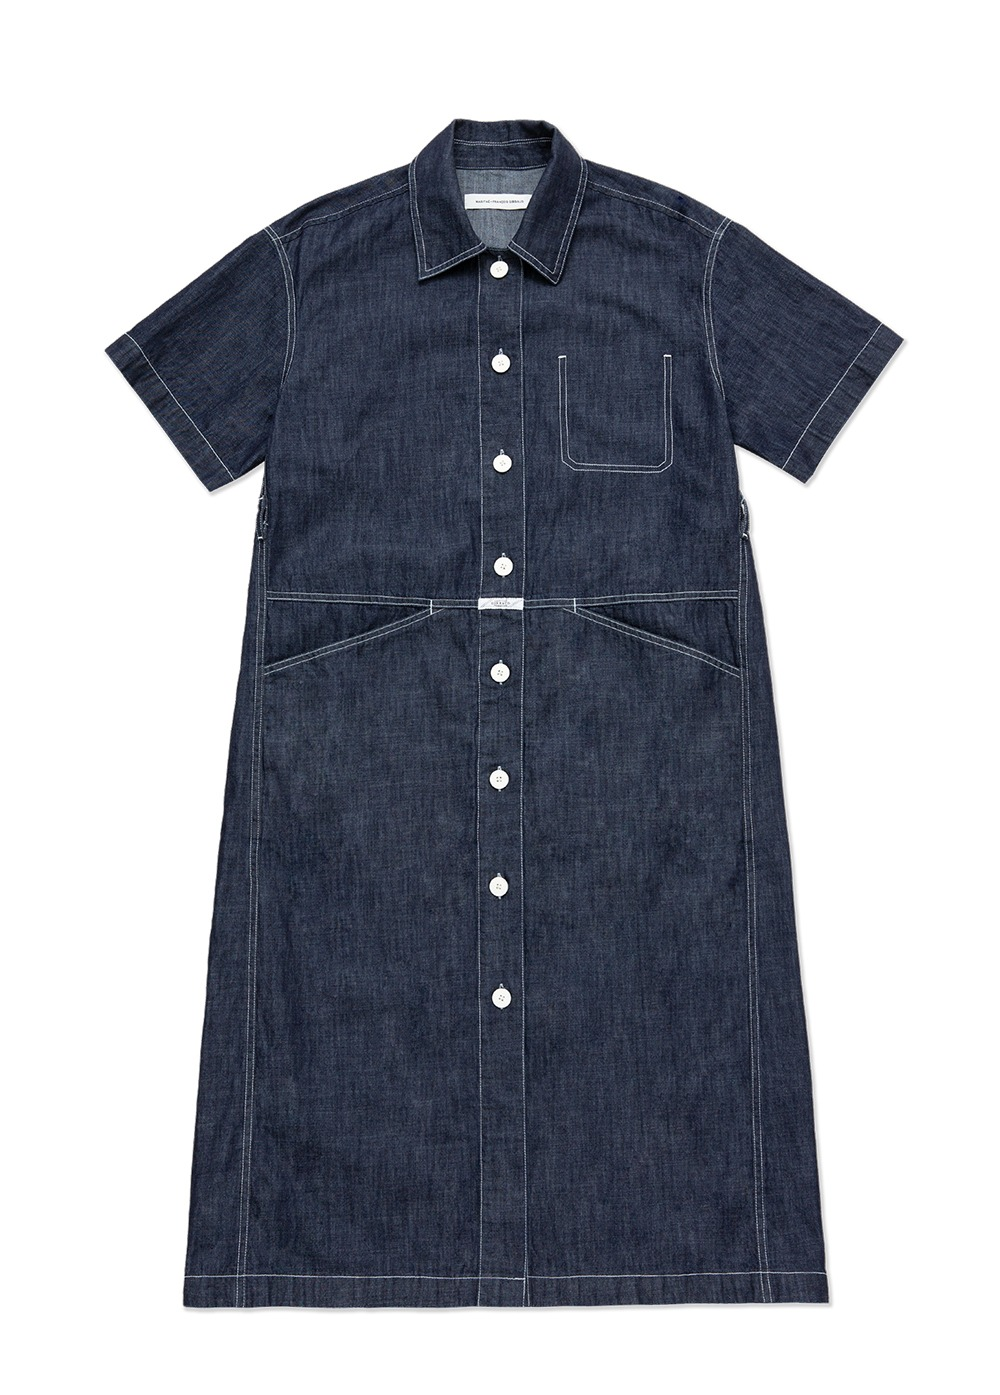 MARITHE STANDARD X SHIRT DRESS indigo